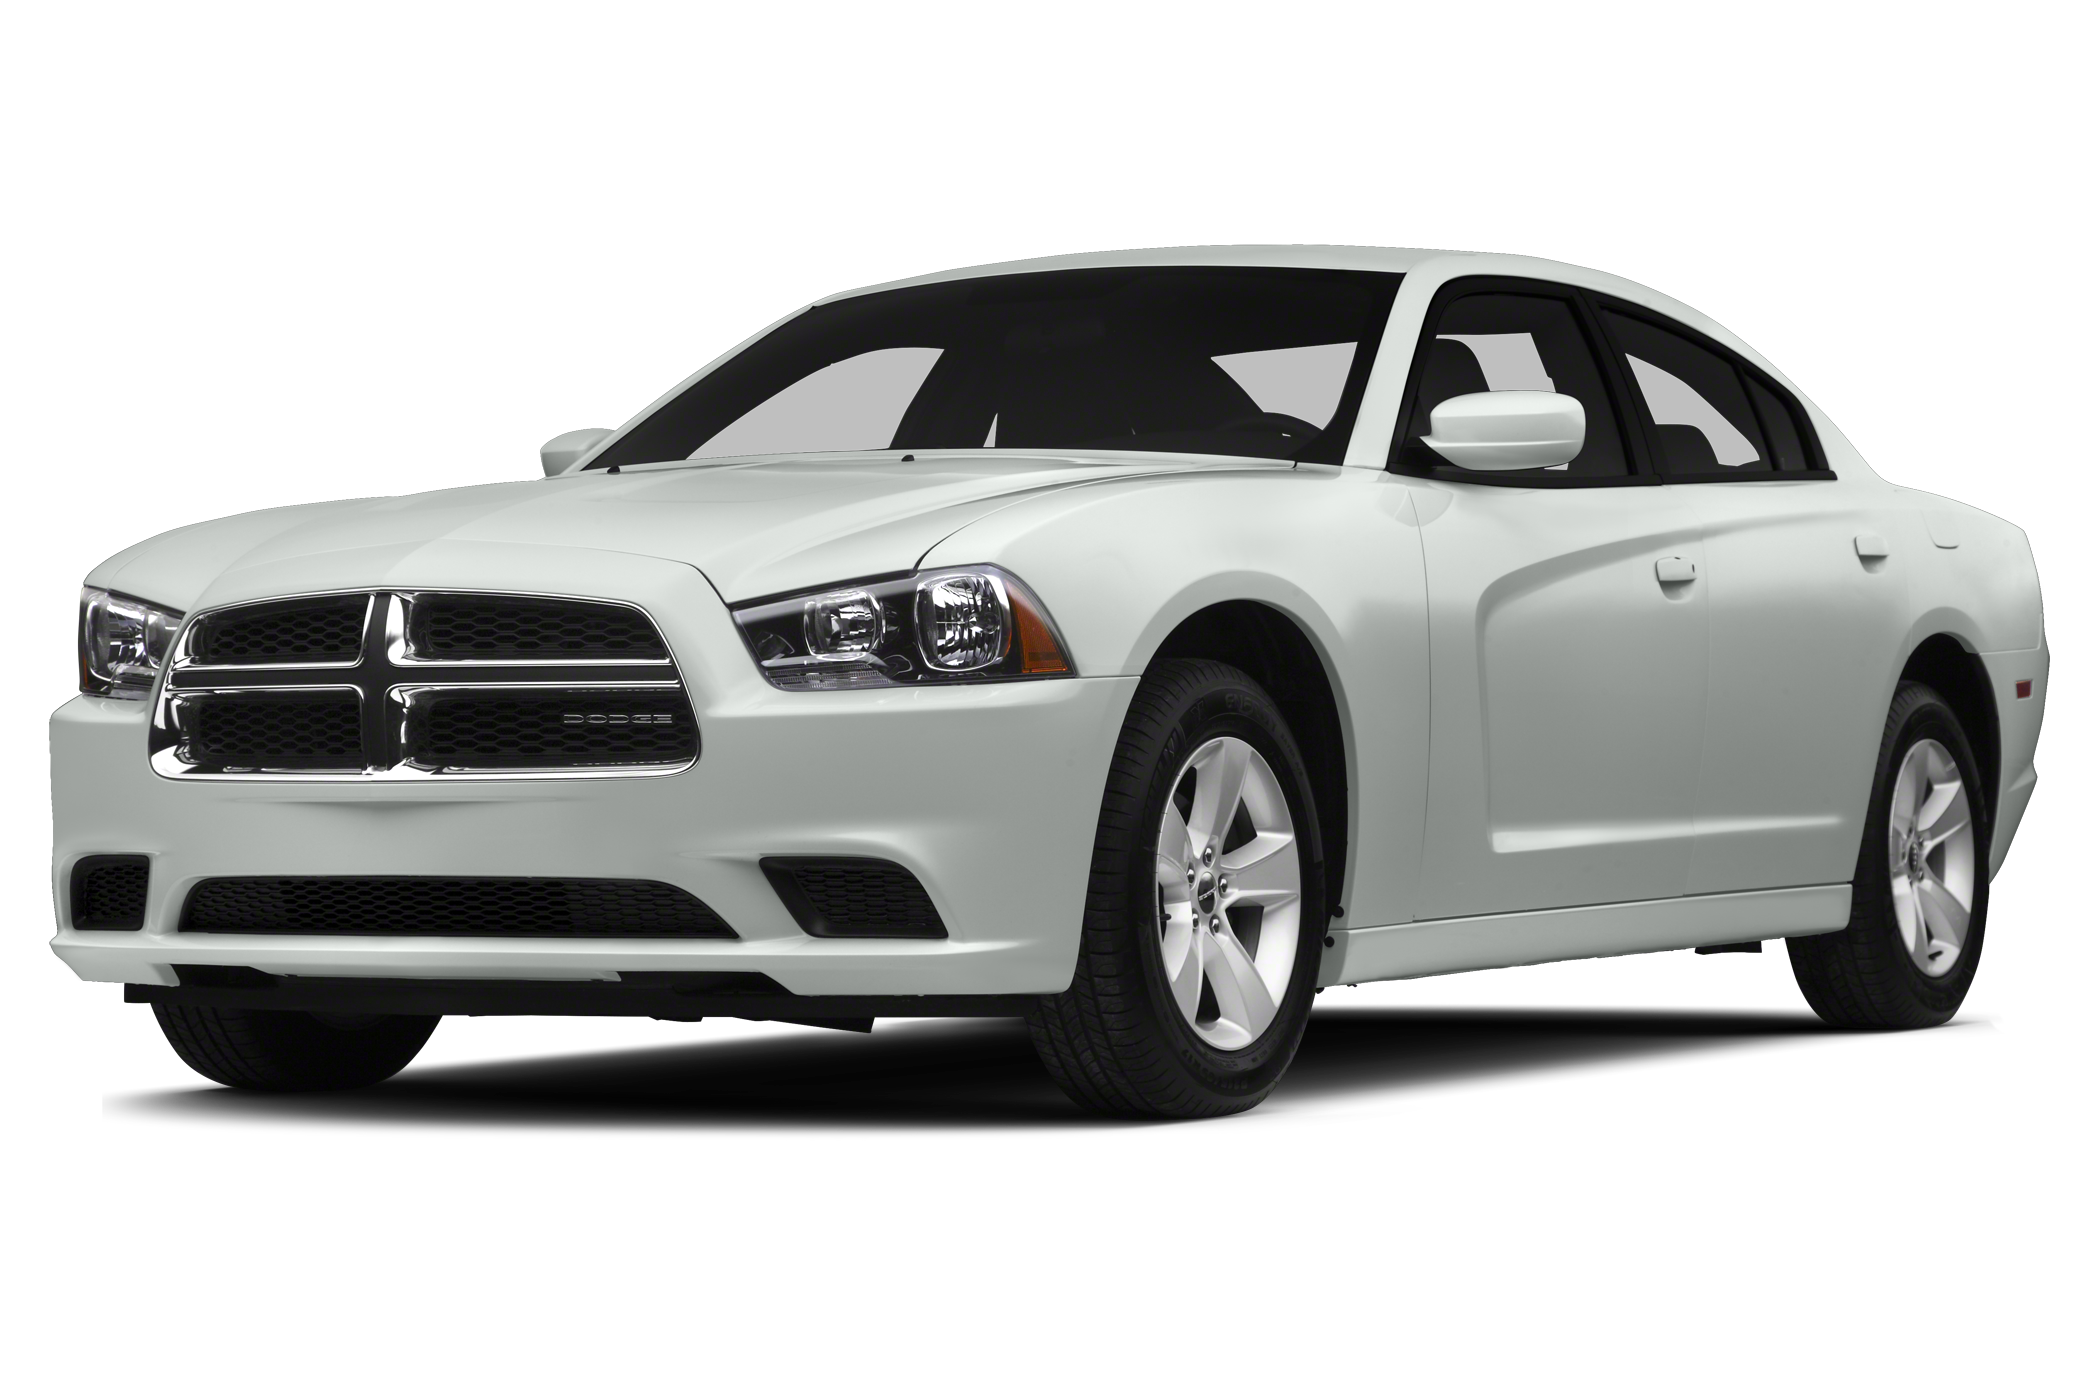 2014 Dodge Charger Reviews, Specs and Prices